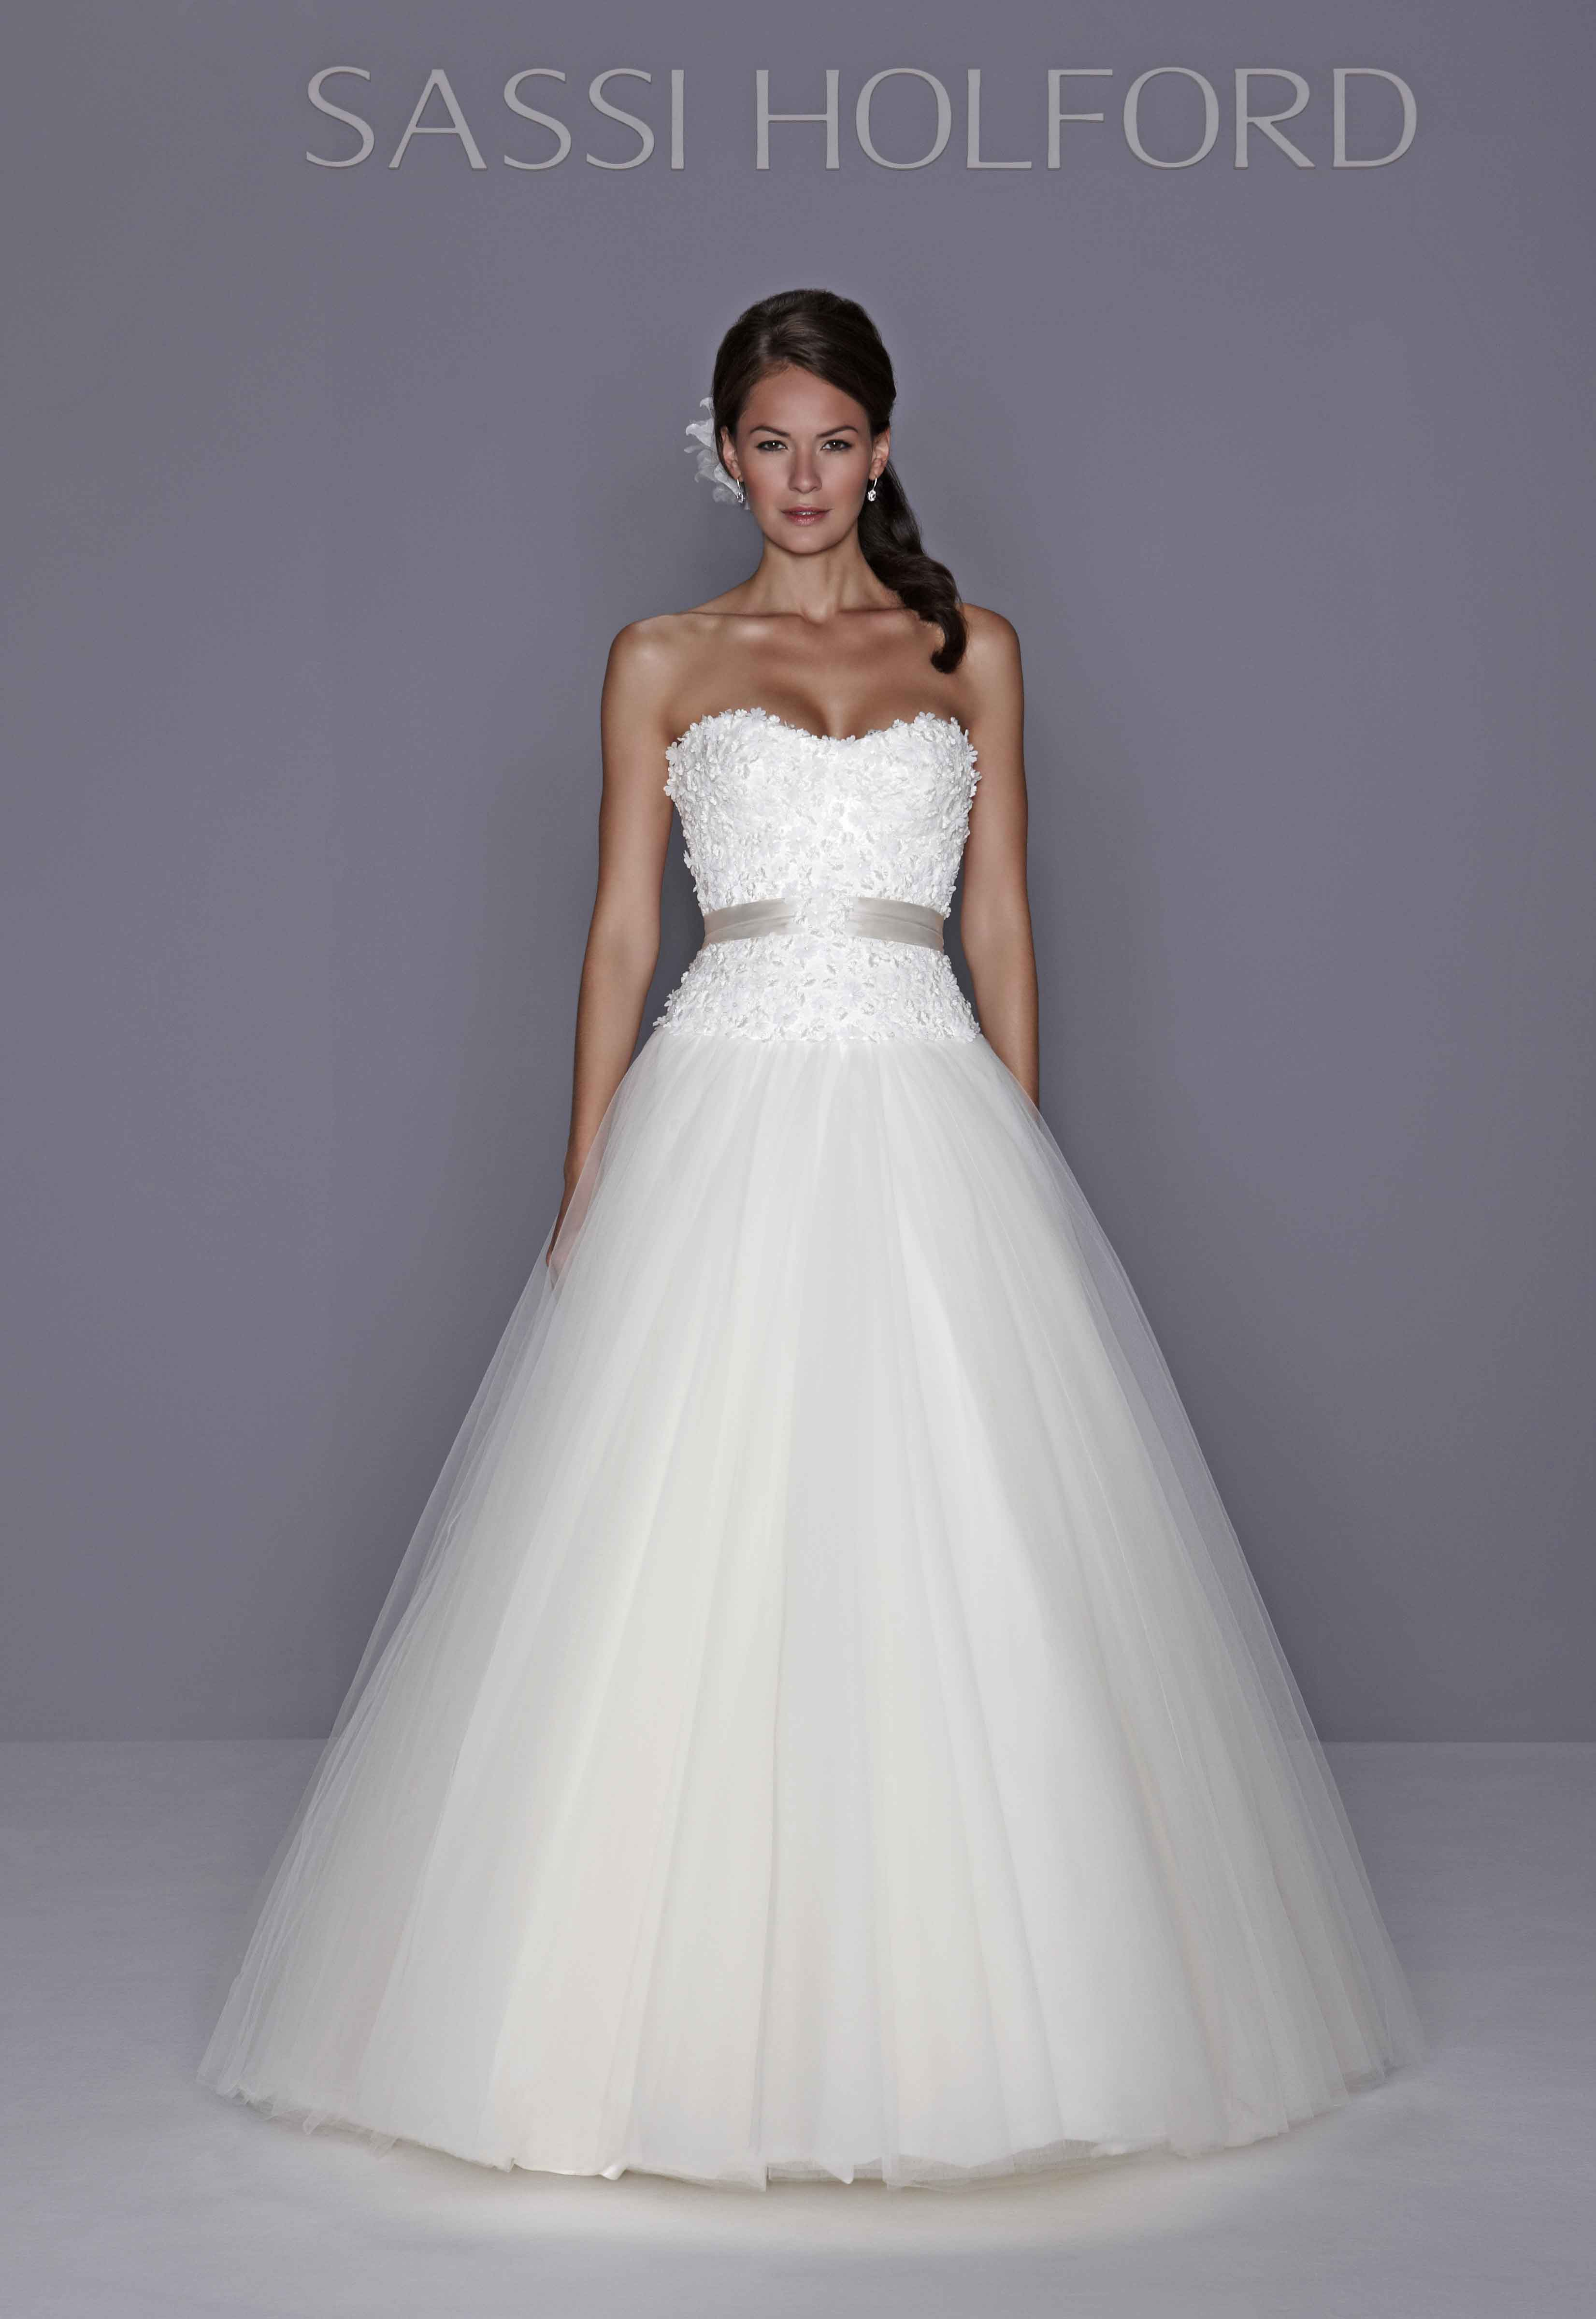 Wedding Dresses, Sweetheart Wedding Dresses, Ball Gown Wedding Dresses, Fashion, Sweetheart, Strapless, Strapless Wedding Dresses, Princess, Fit and flare, Ribbon, Belt, Tulle, Sassi holford, Ball gown, embellished bodice, Ball gown skirt, tulle wedding dresses